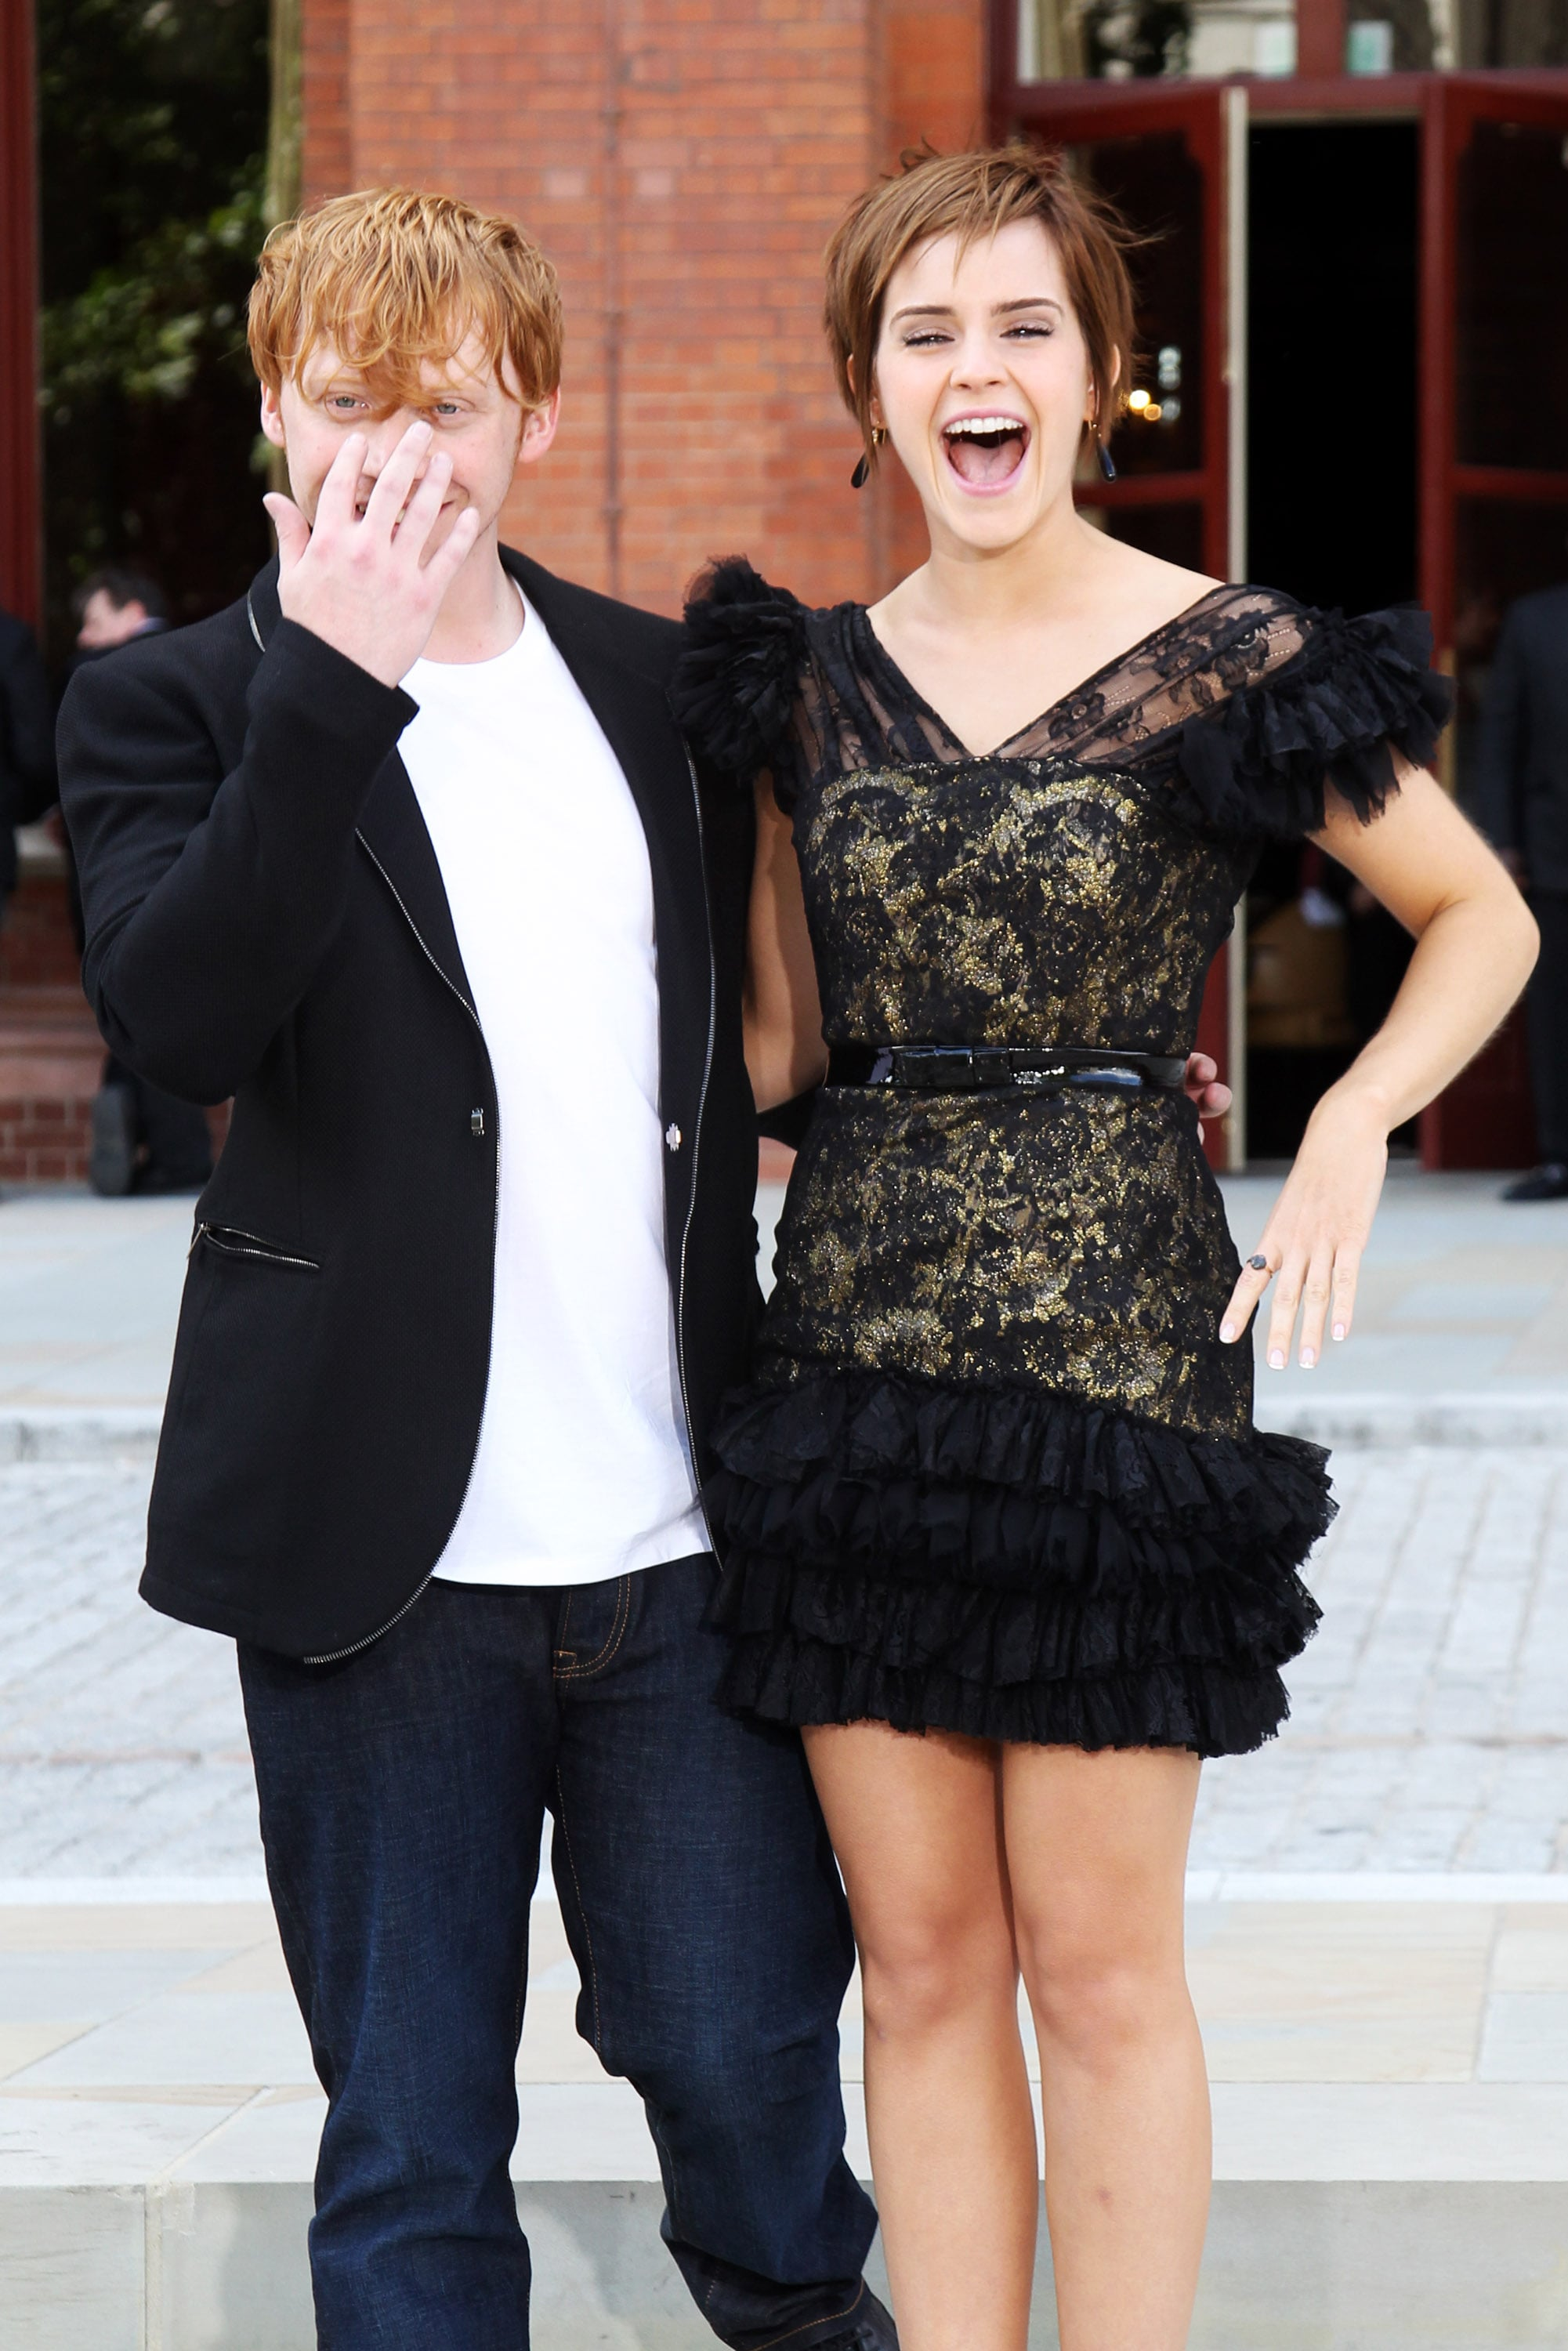 The photographers got a big laugh out of Rupert and Emma.